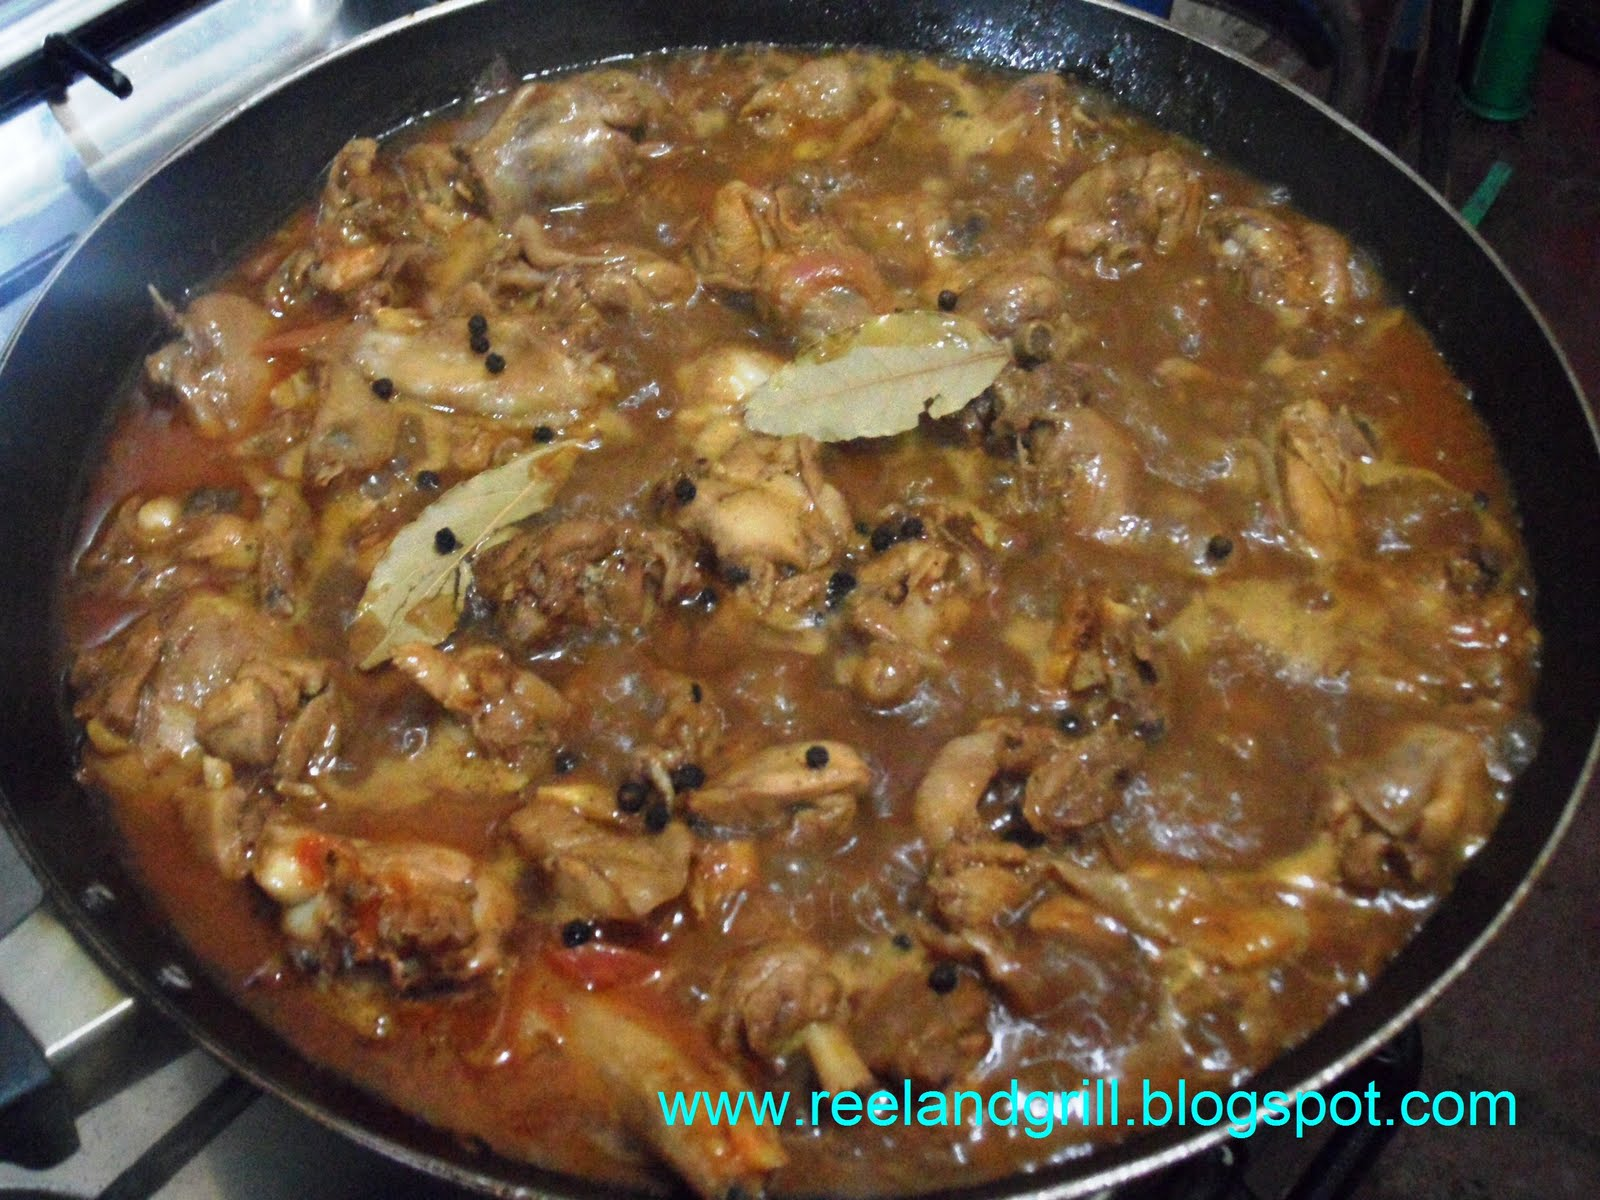 manok poultry Barbecued balon-balonan ng manok, or chicken gizzards, is a popular street food in the philippines along.